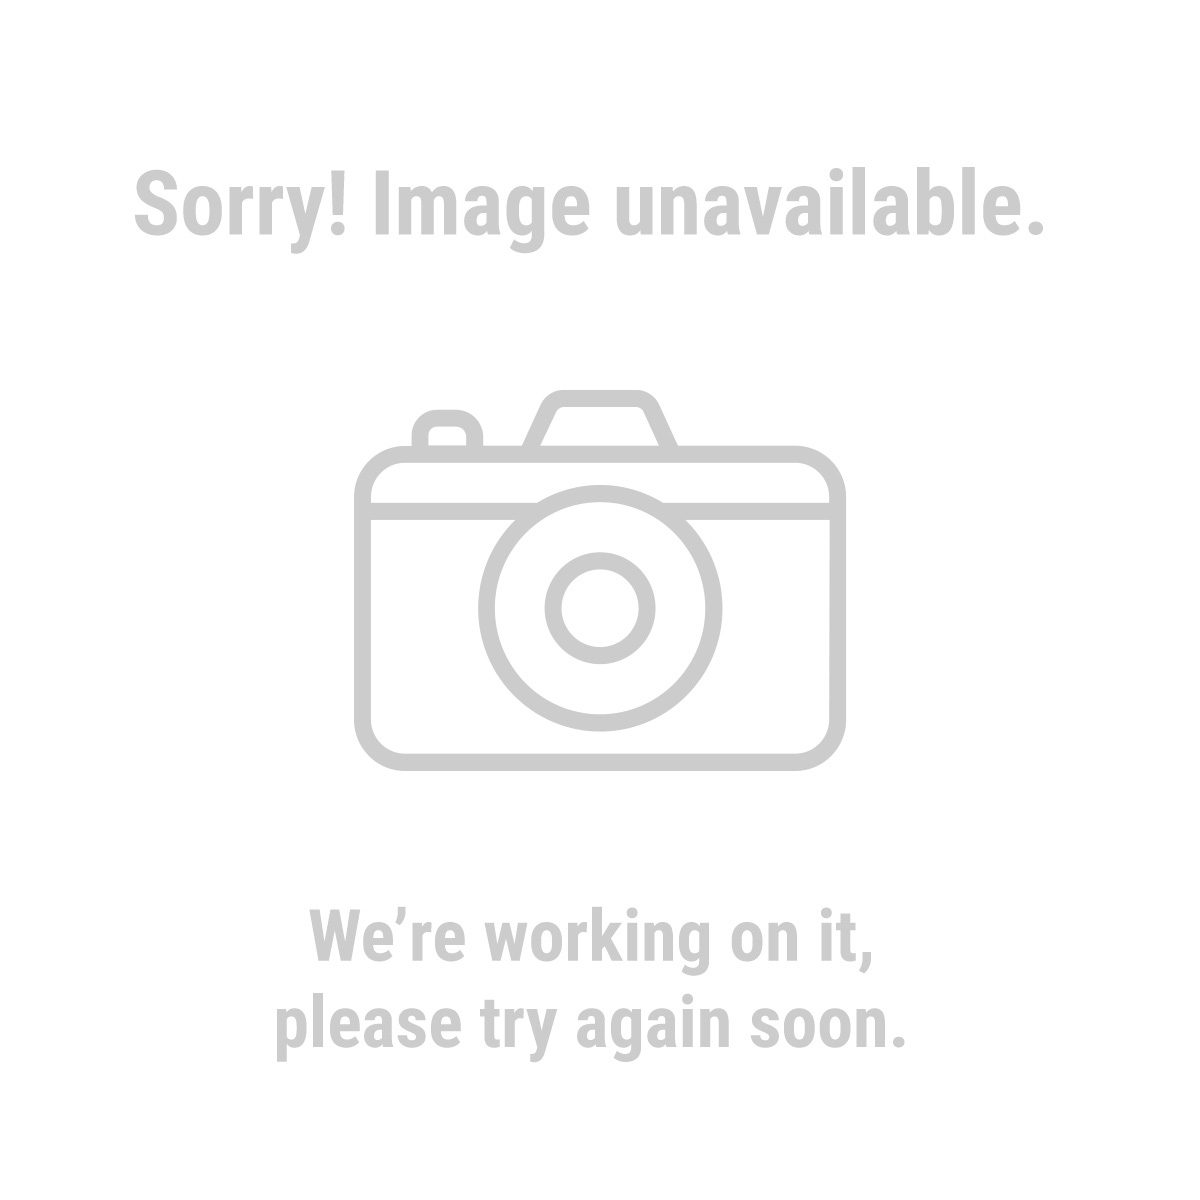 HFT 67781 Large Tilt Mount TV Bracket